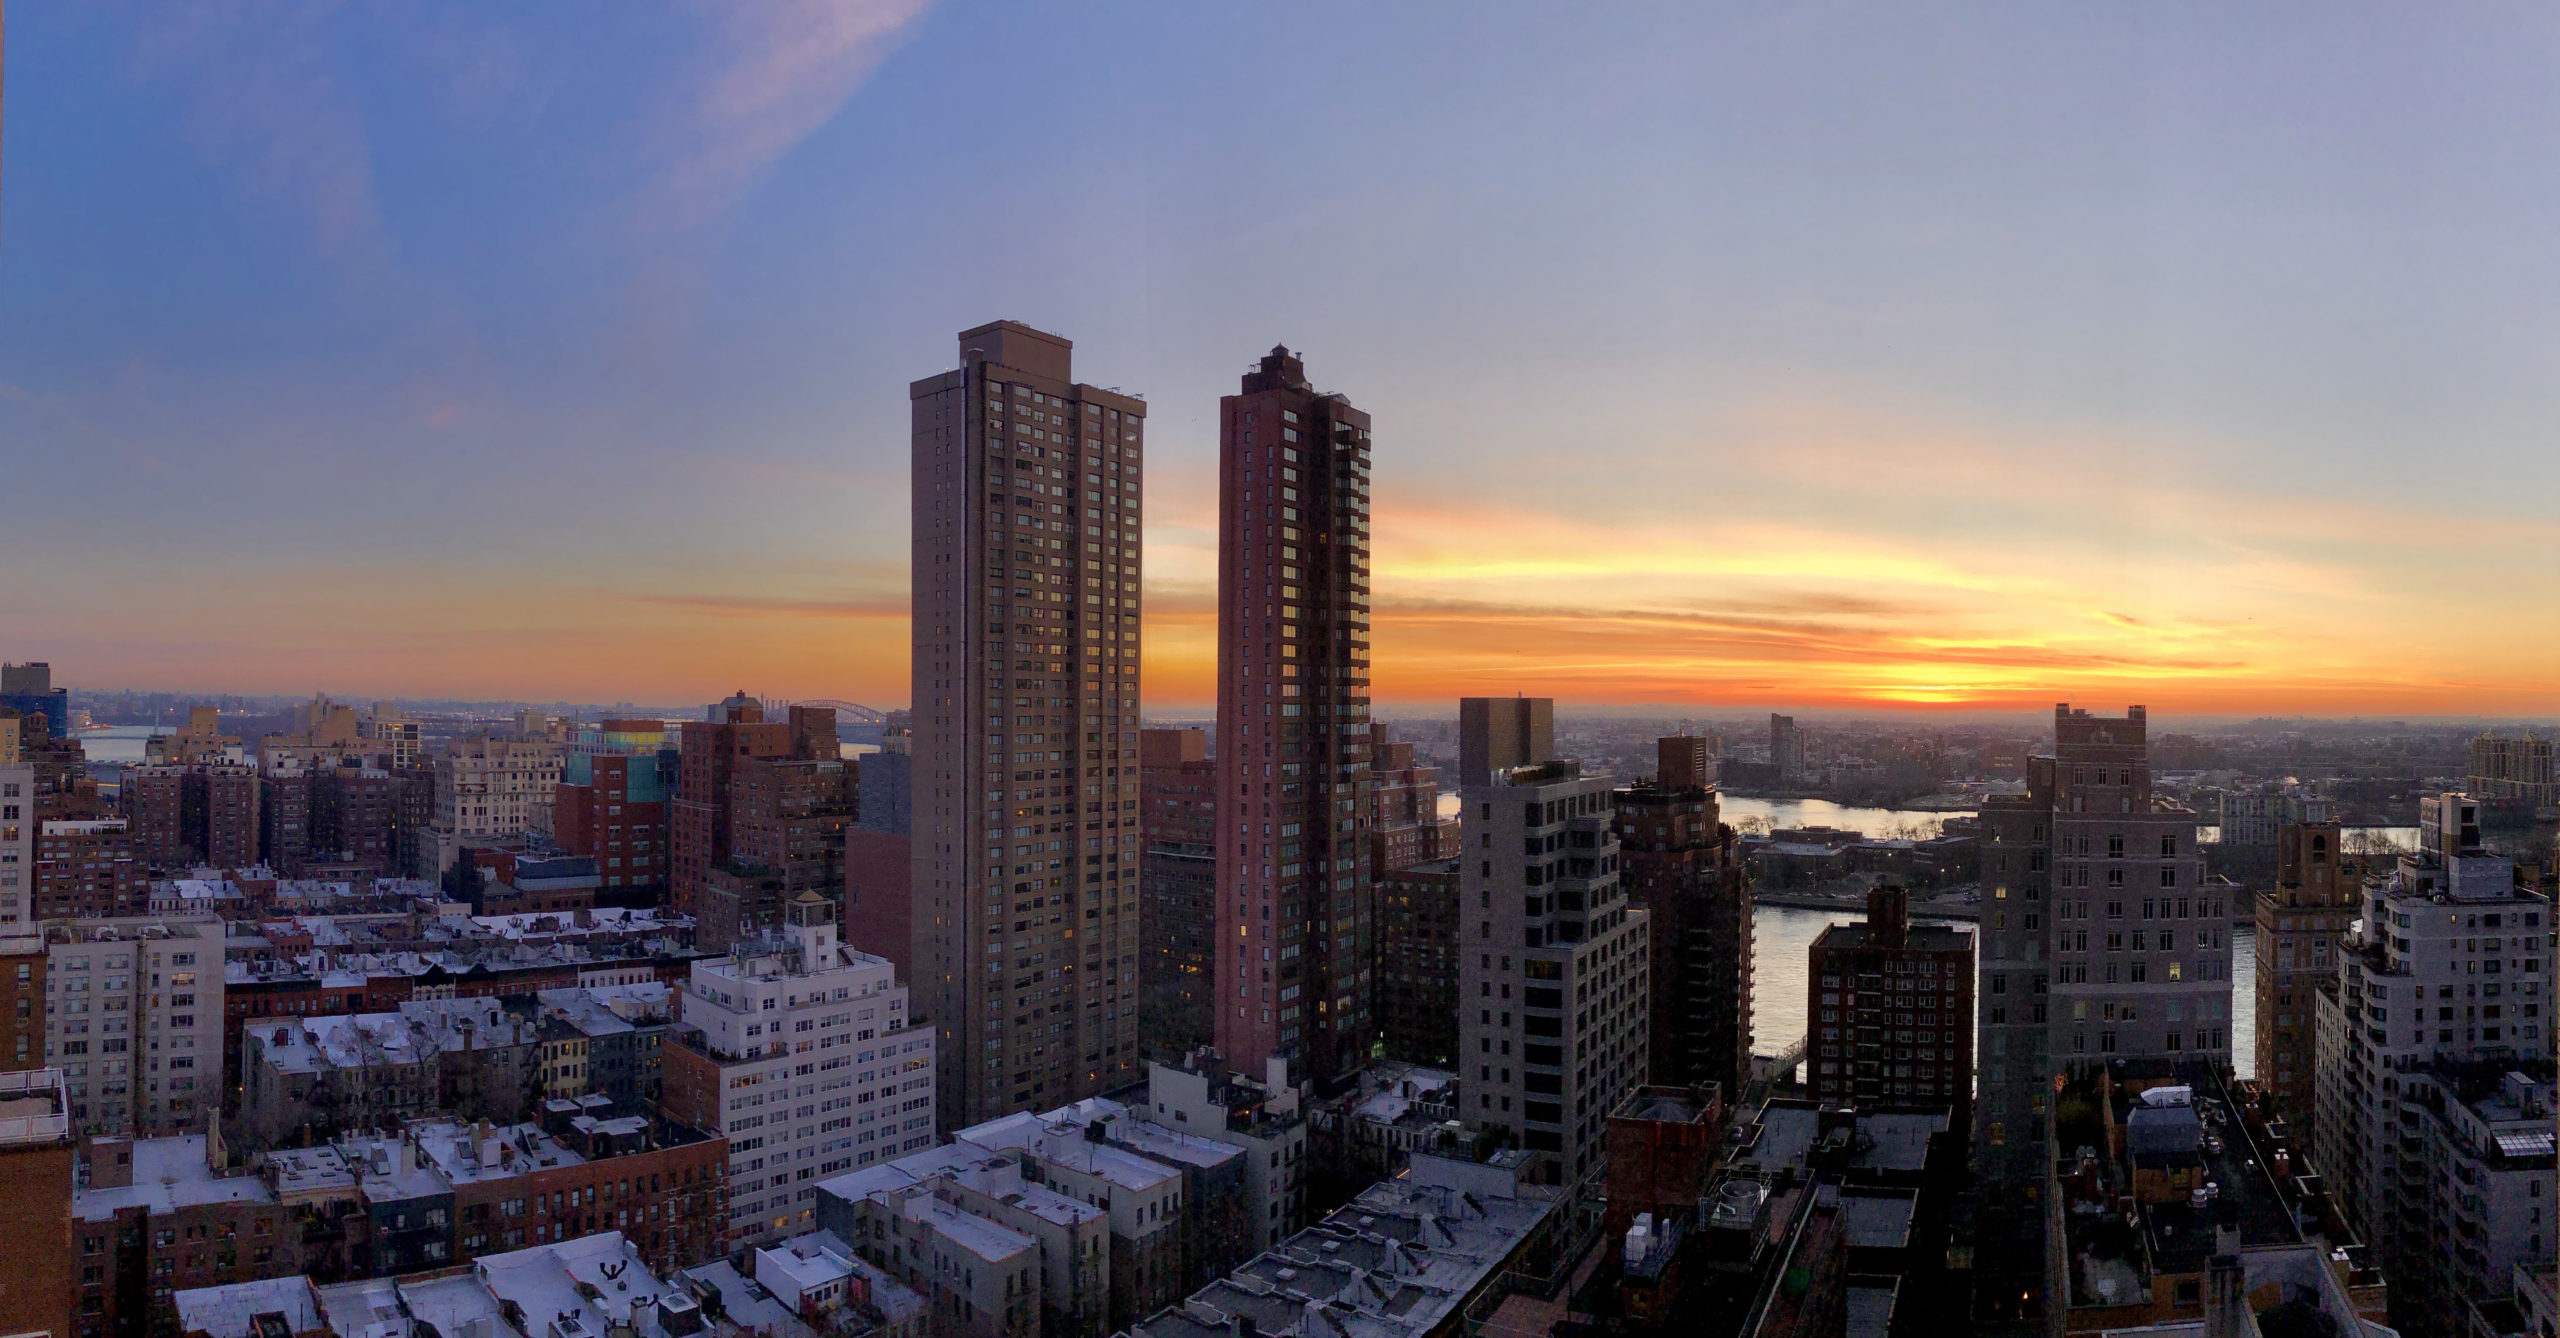 Sunrise over the East River from my apartment on the Upper East Side